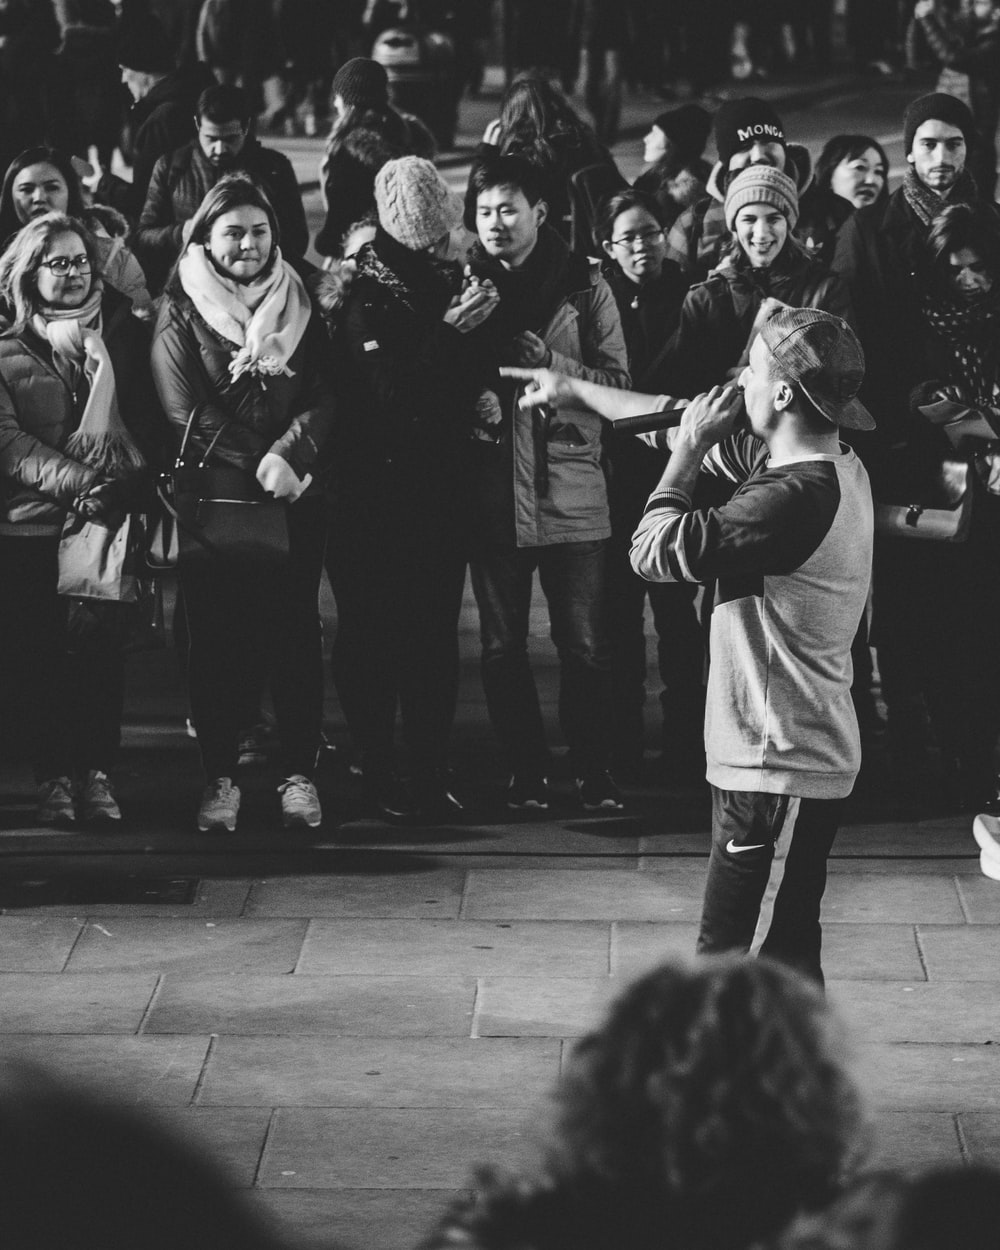 gray scale photo of man performing in front of people on street